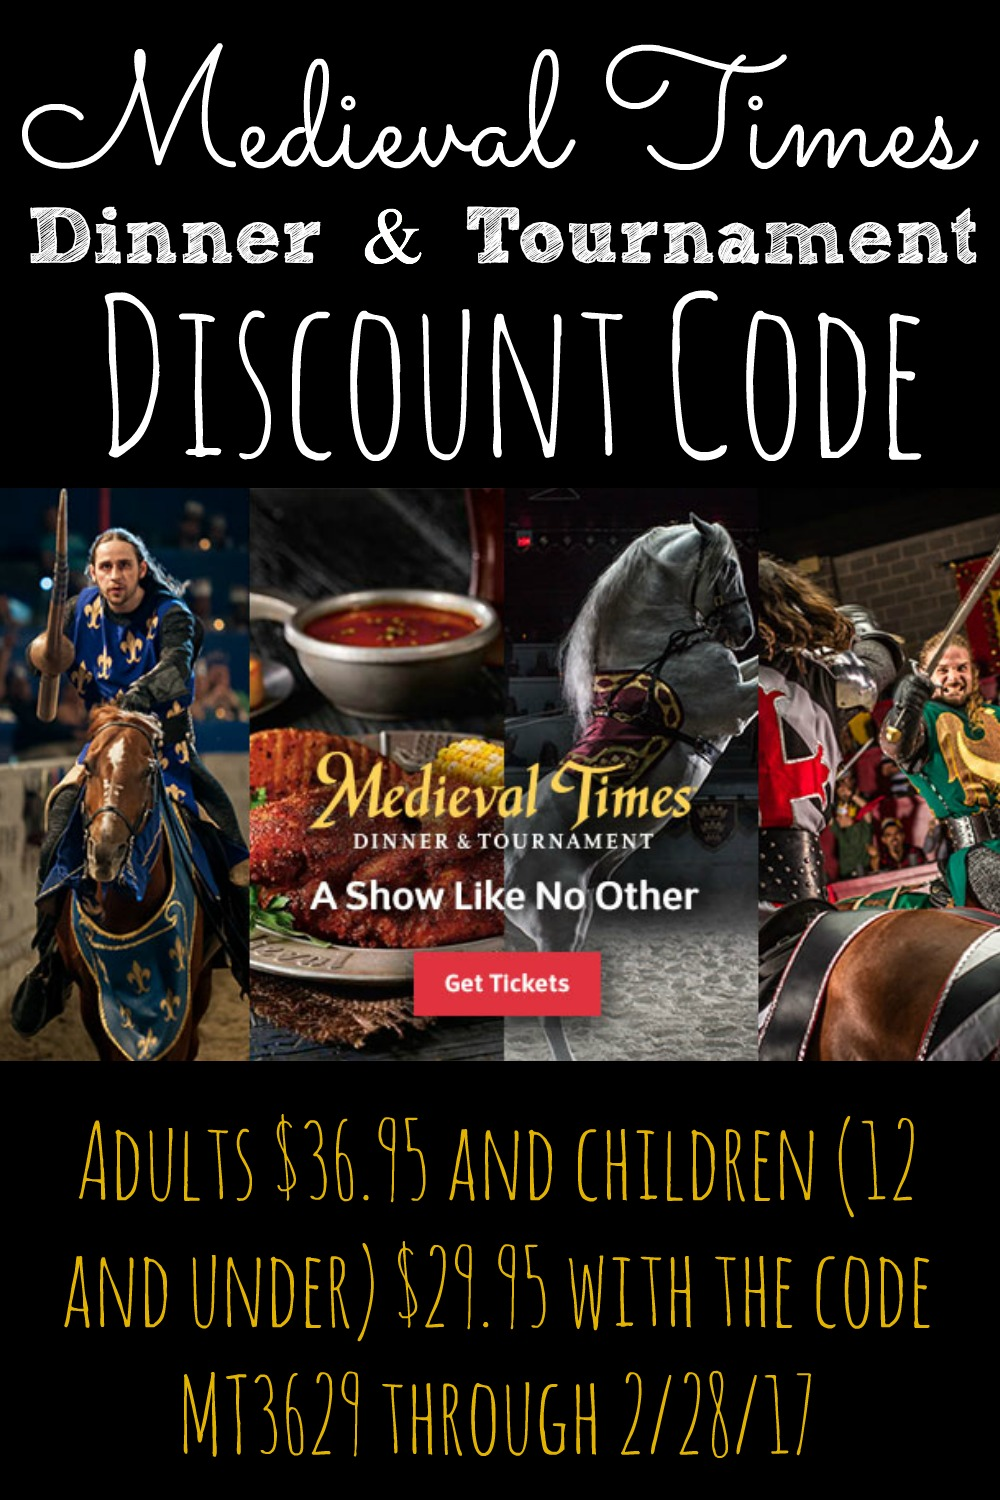 medieval-times-dinner-and-tournament-discount-code